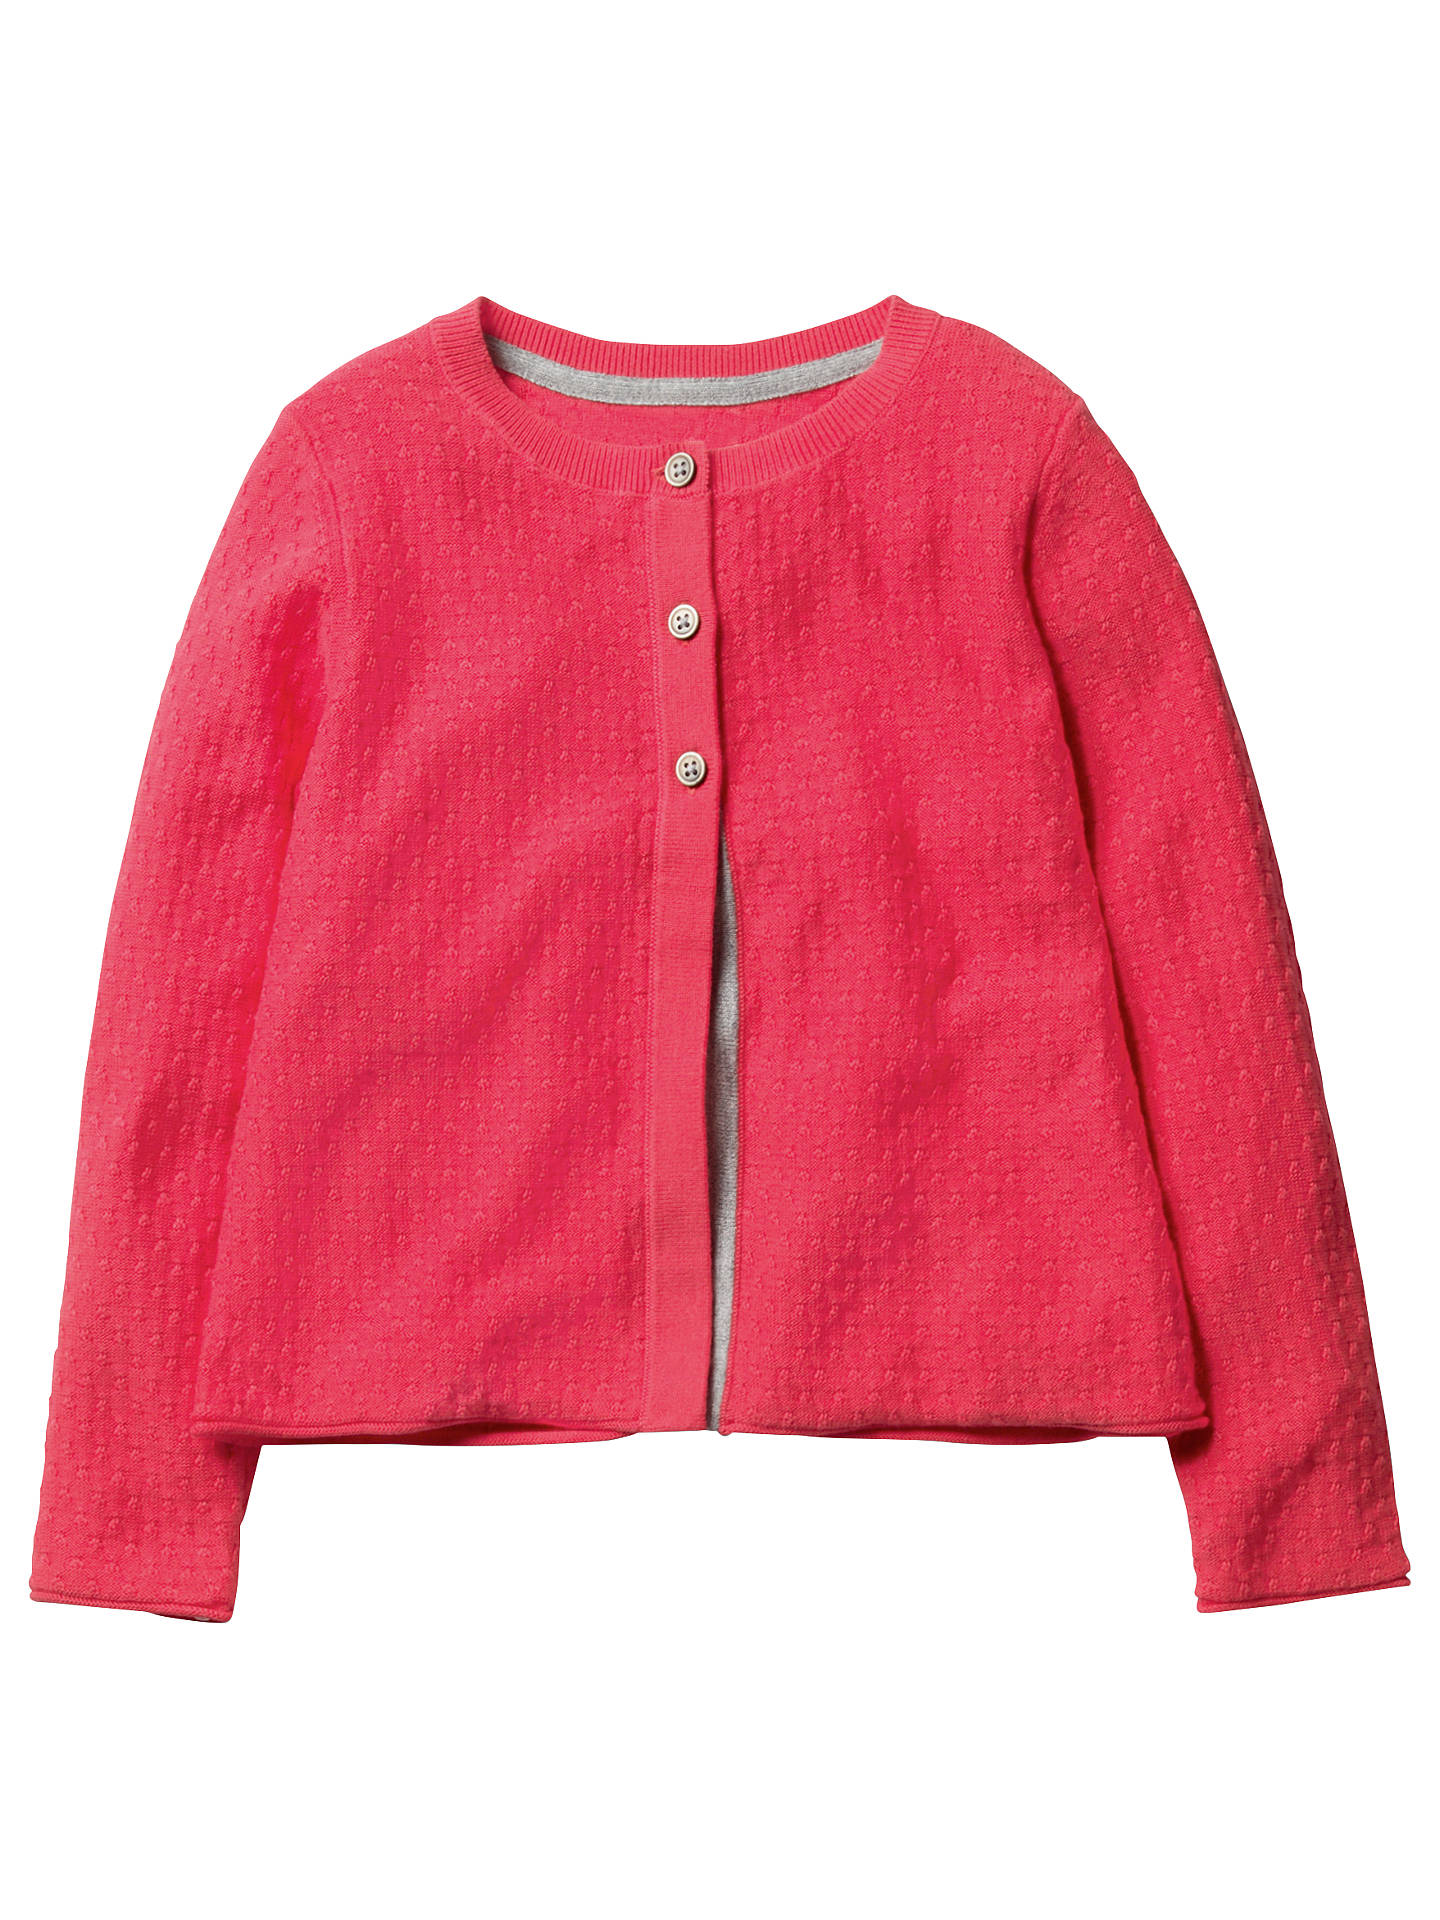 Mini Boden Girls Pretty Cardigan Pink At John Lewis Partners